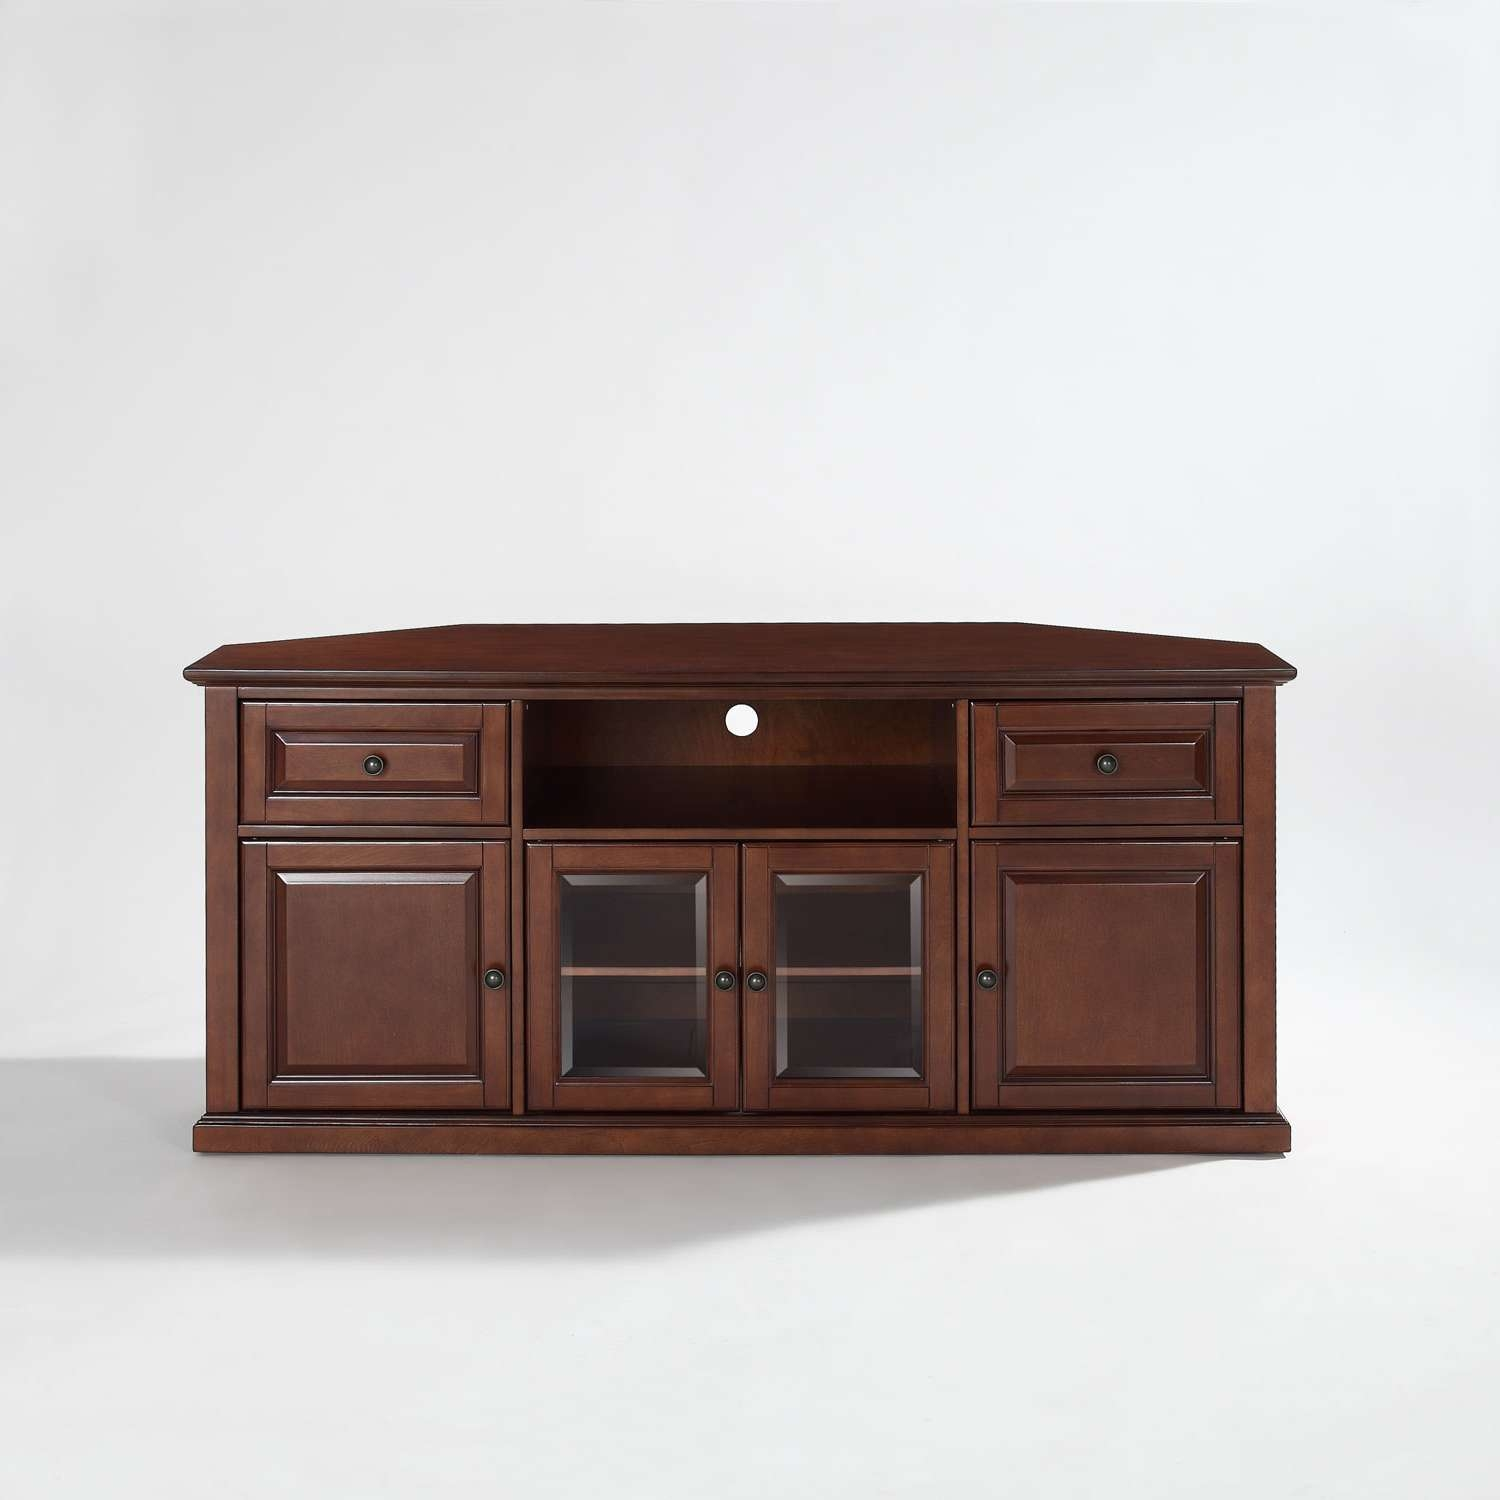 60 Inch Corner Tv Stand In Vintage Mahogany Crosley Furniture Throughout Wooden Corner Tv Stands (View 11 of 20)